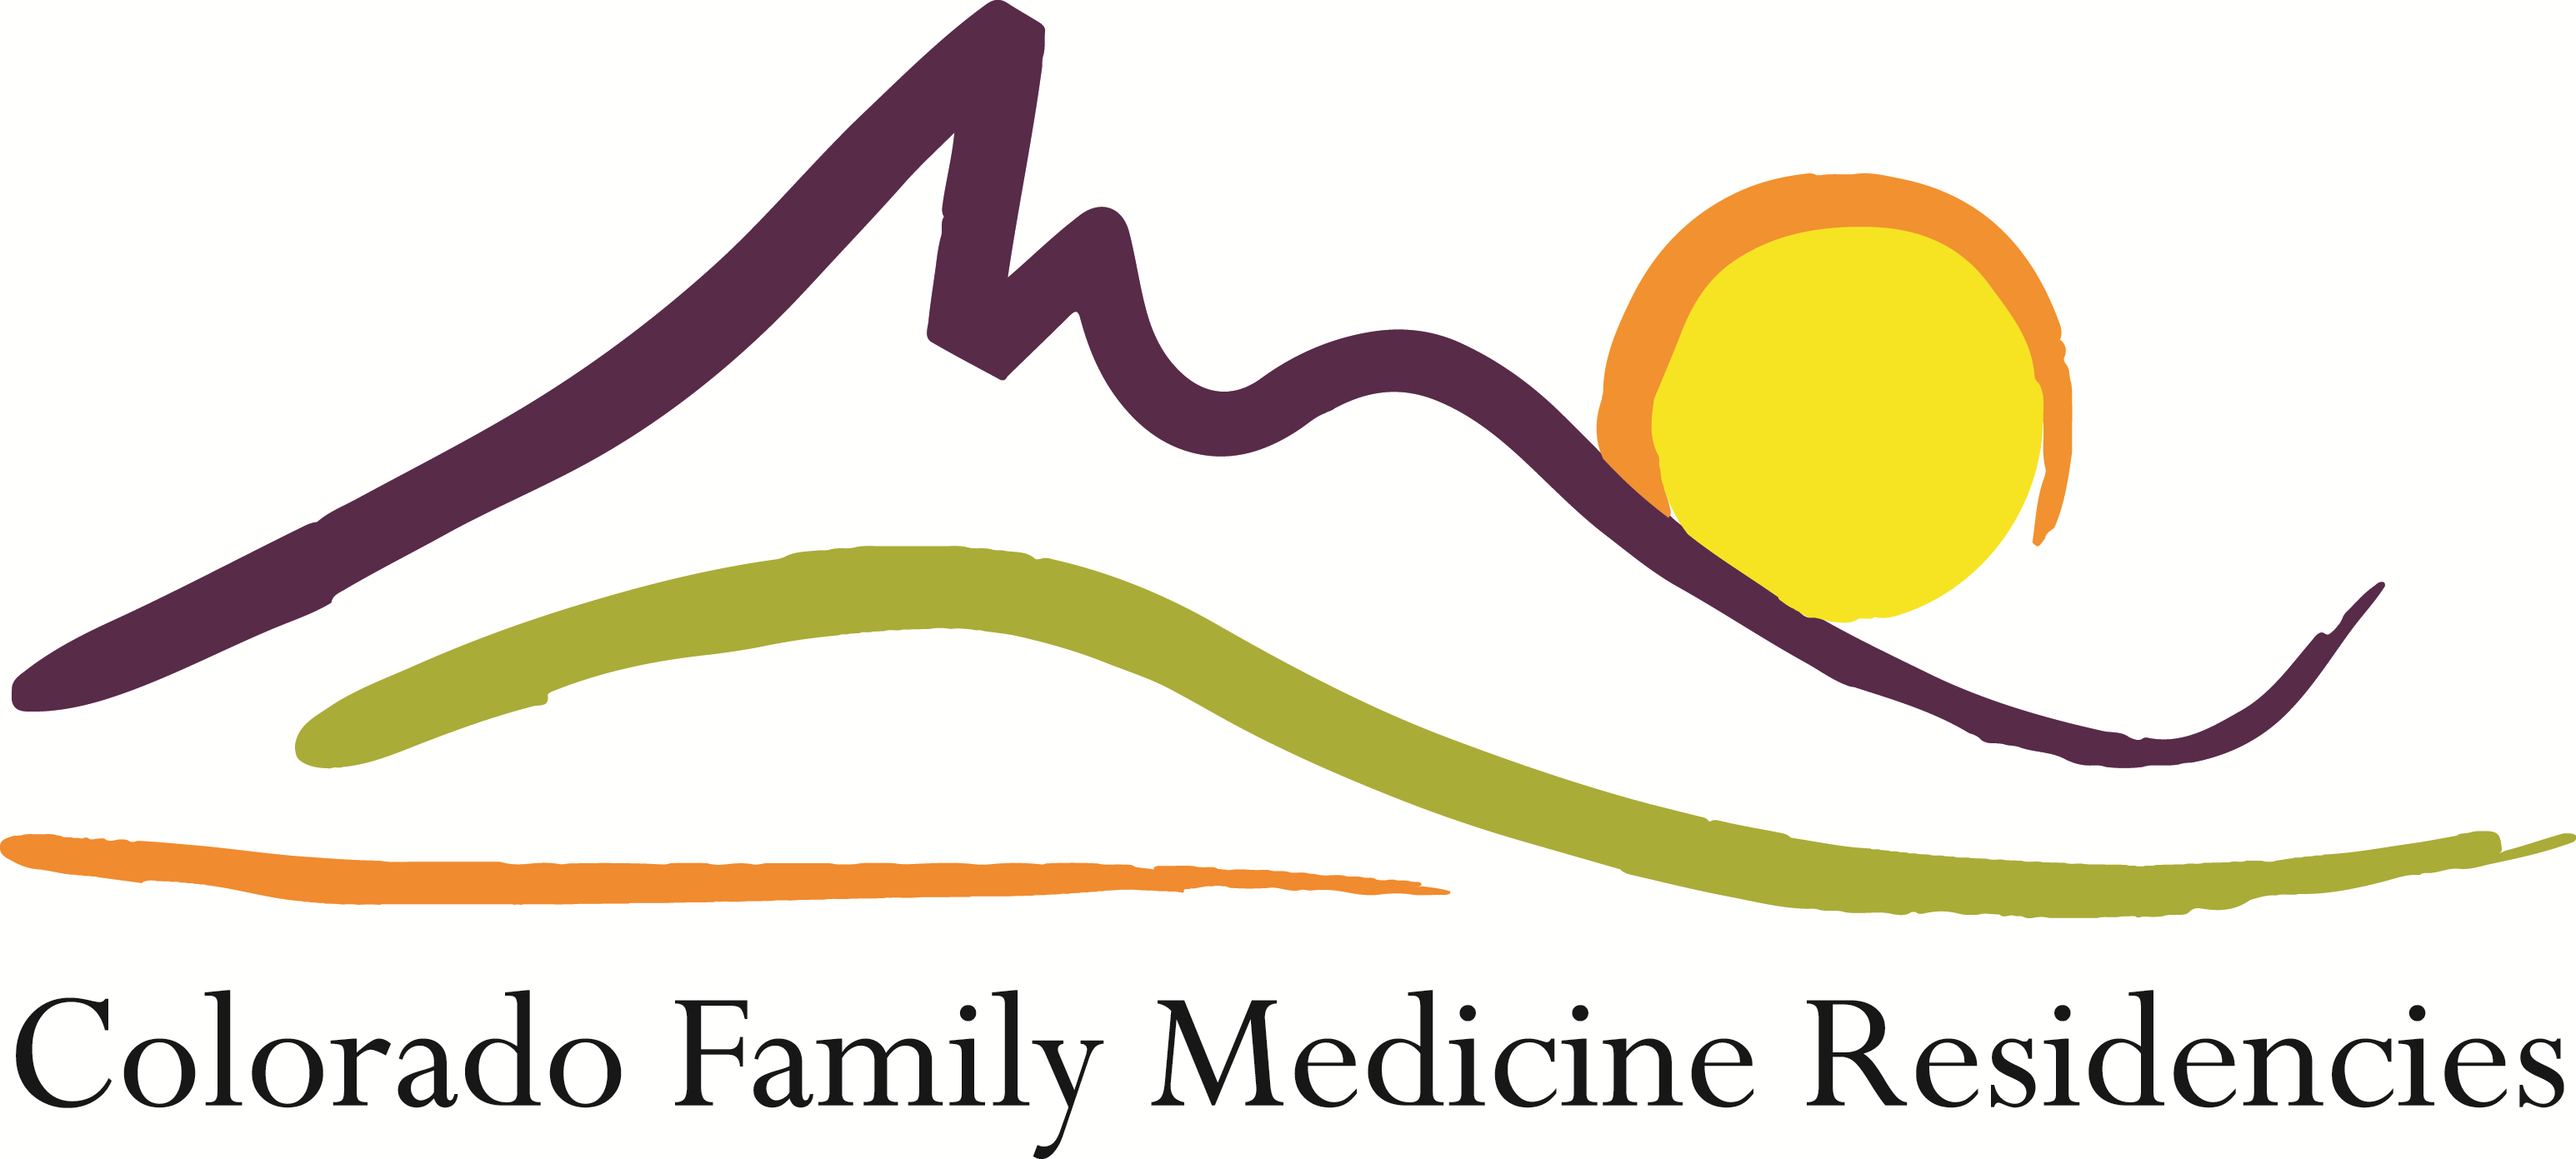 Colorado Family Medicine Residencies